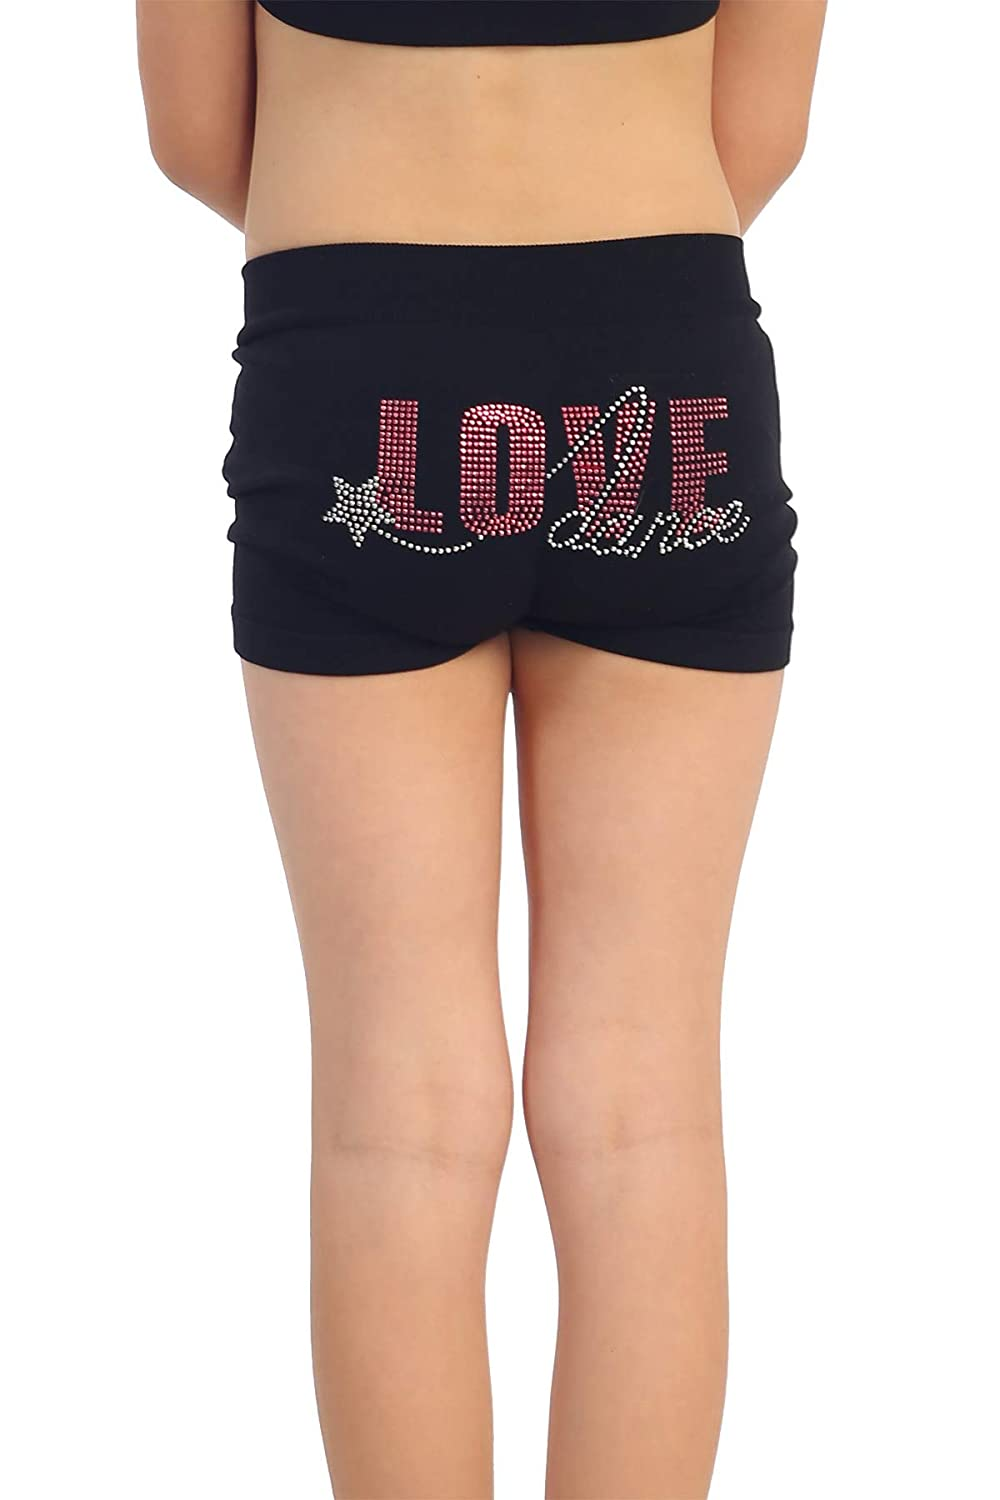 UV Protective Fabric UPF 50+ Kurve Kids Dance Shorts Made with Love in The USA